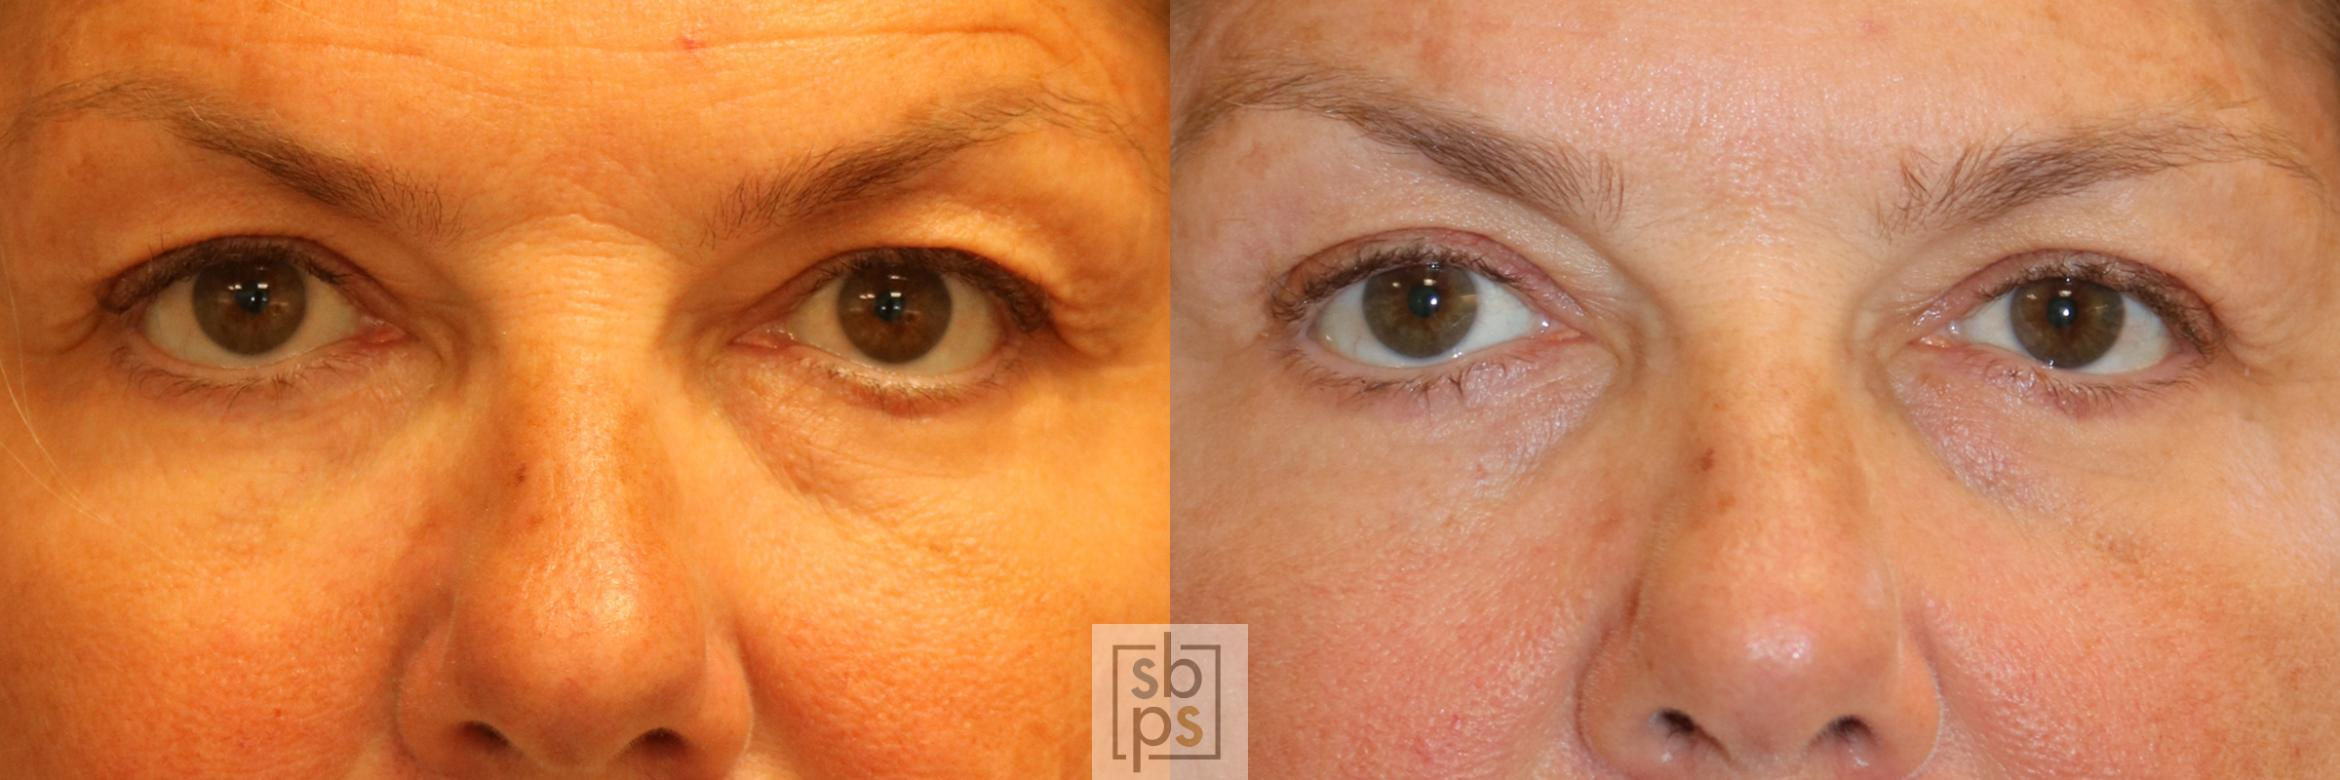 Brow Lift Before & After Photo | Torrance, CA | Plastic Surgery Source